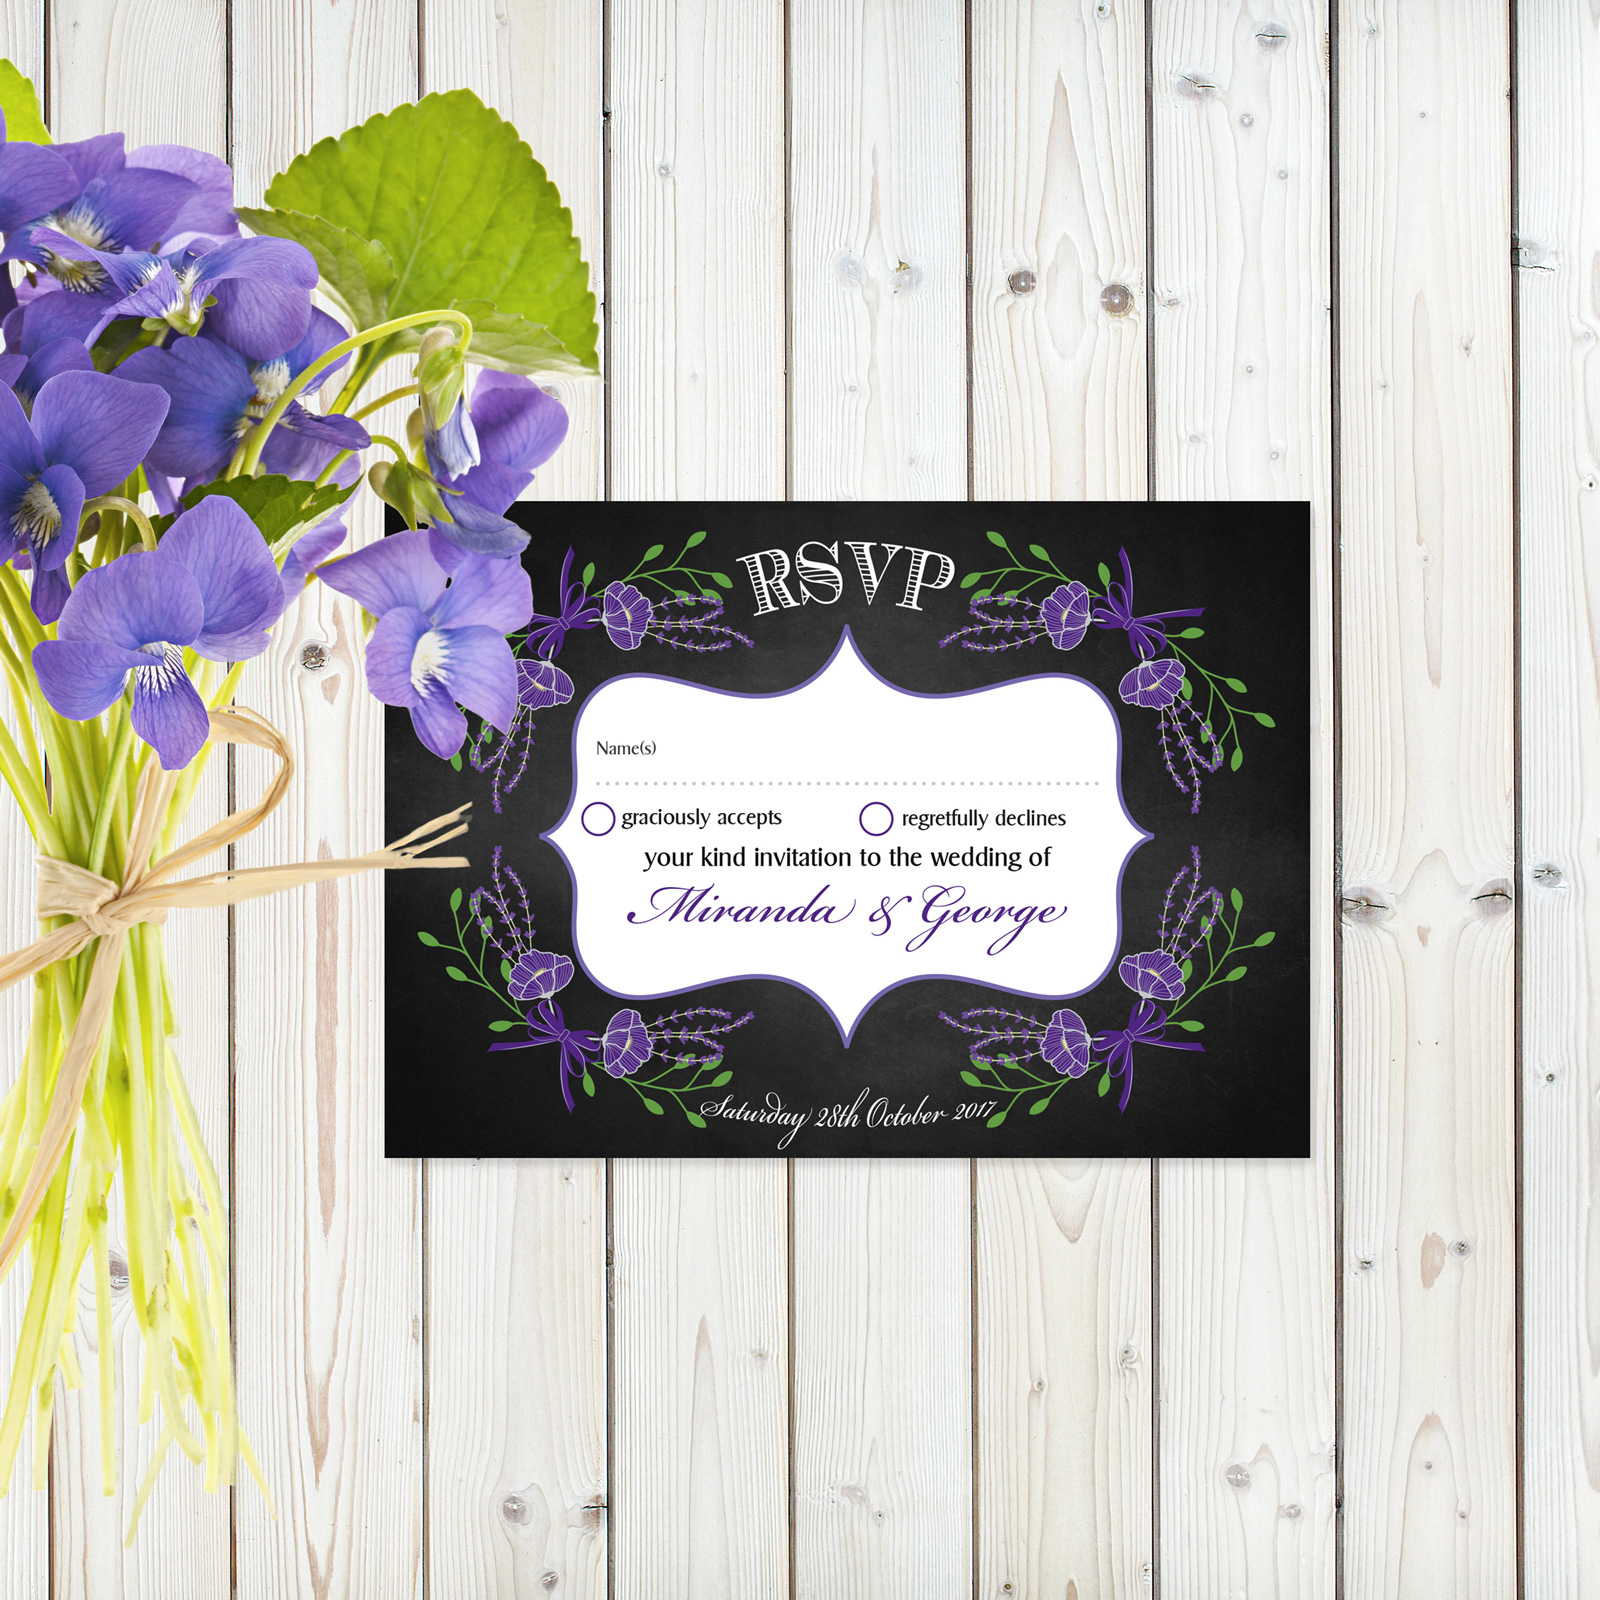 RSVP postcards from £0.86 ea